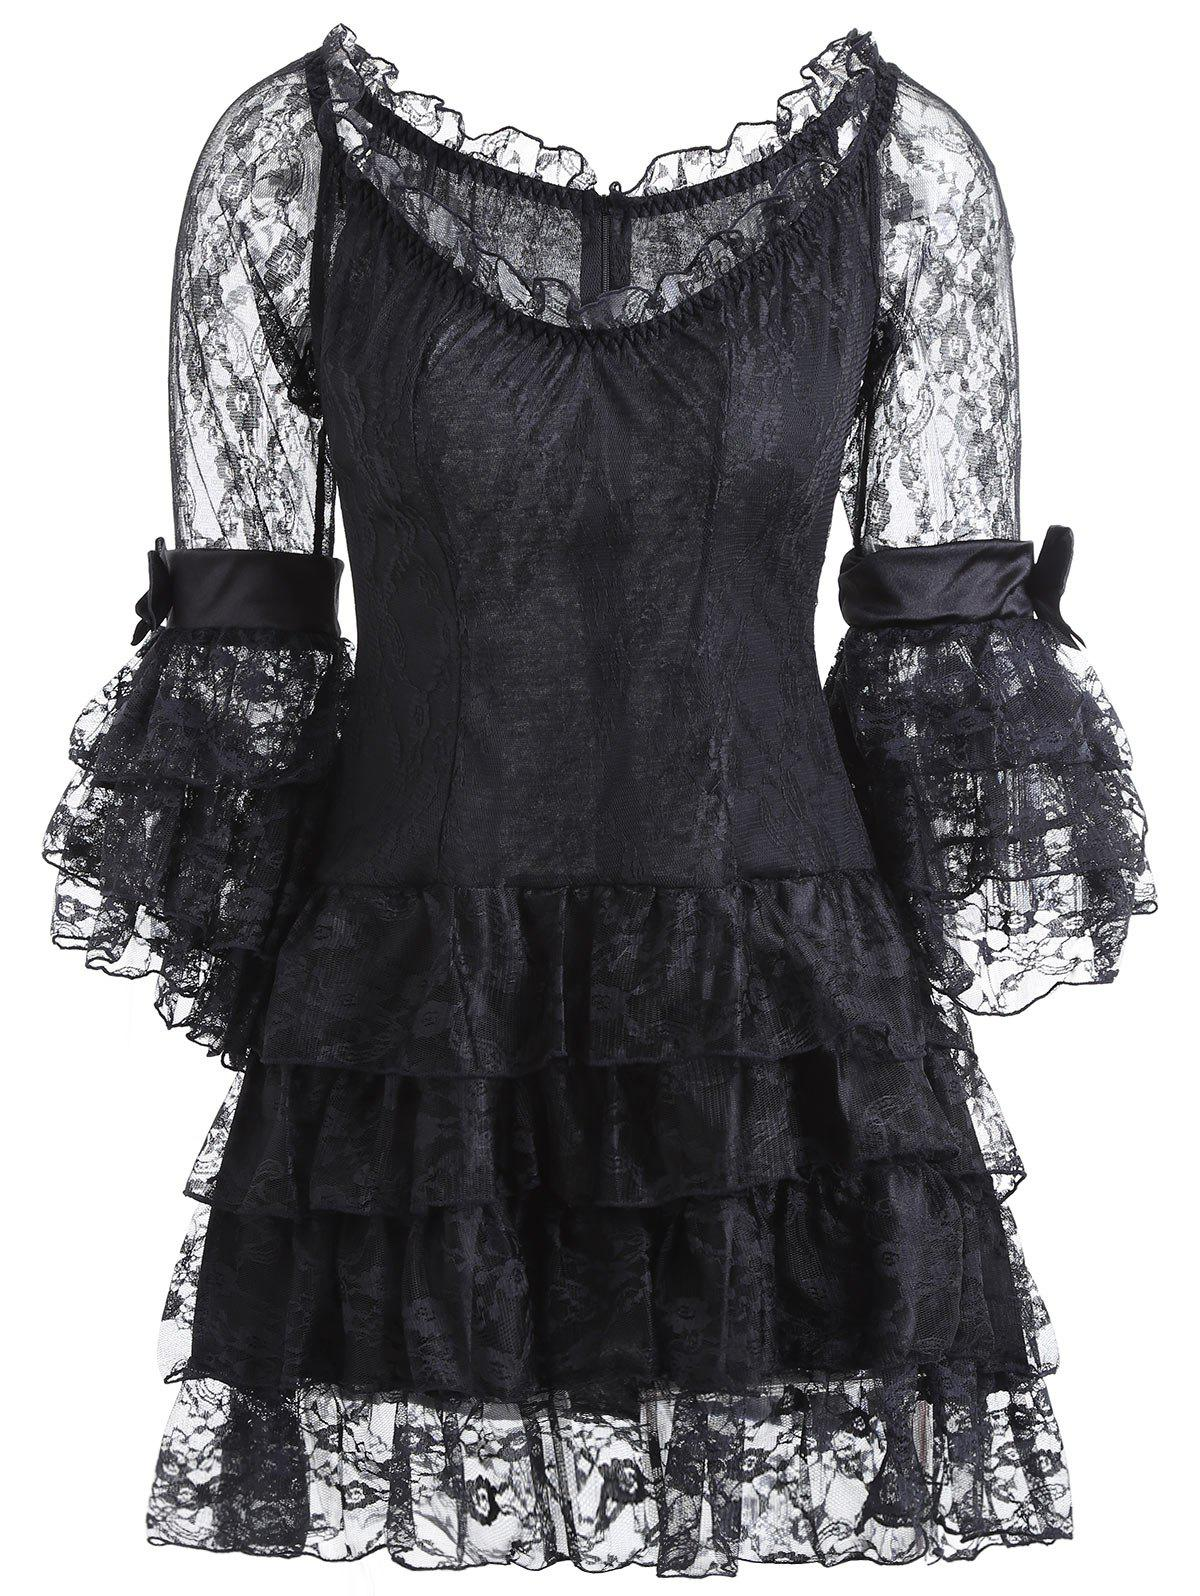 Vintage Corset Top with Sheer Voile Dress